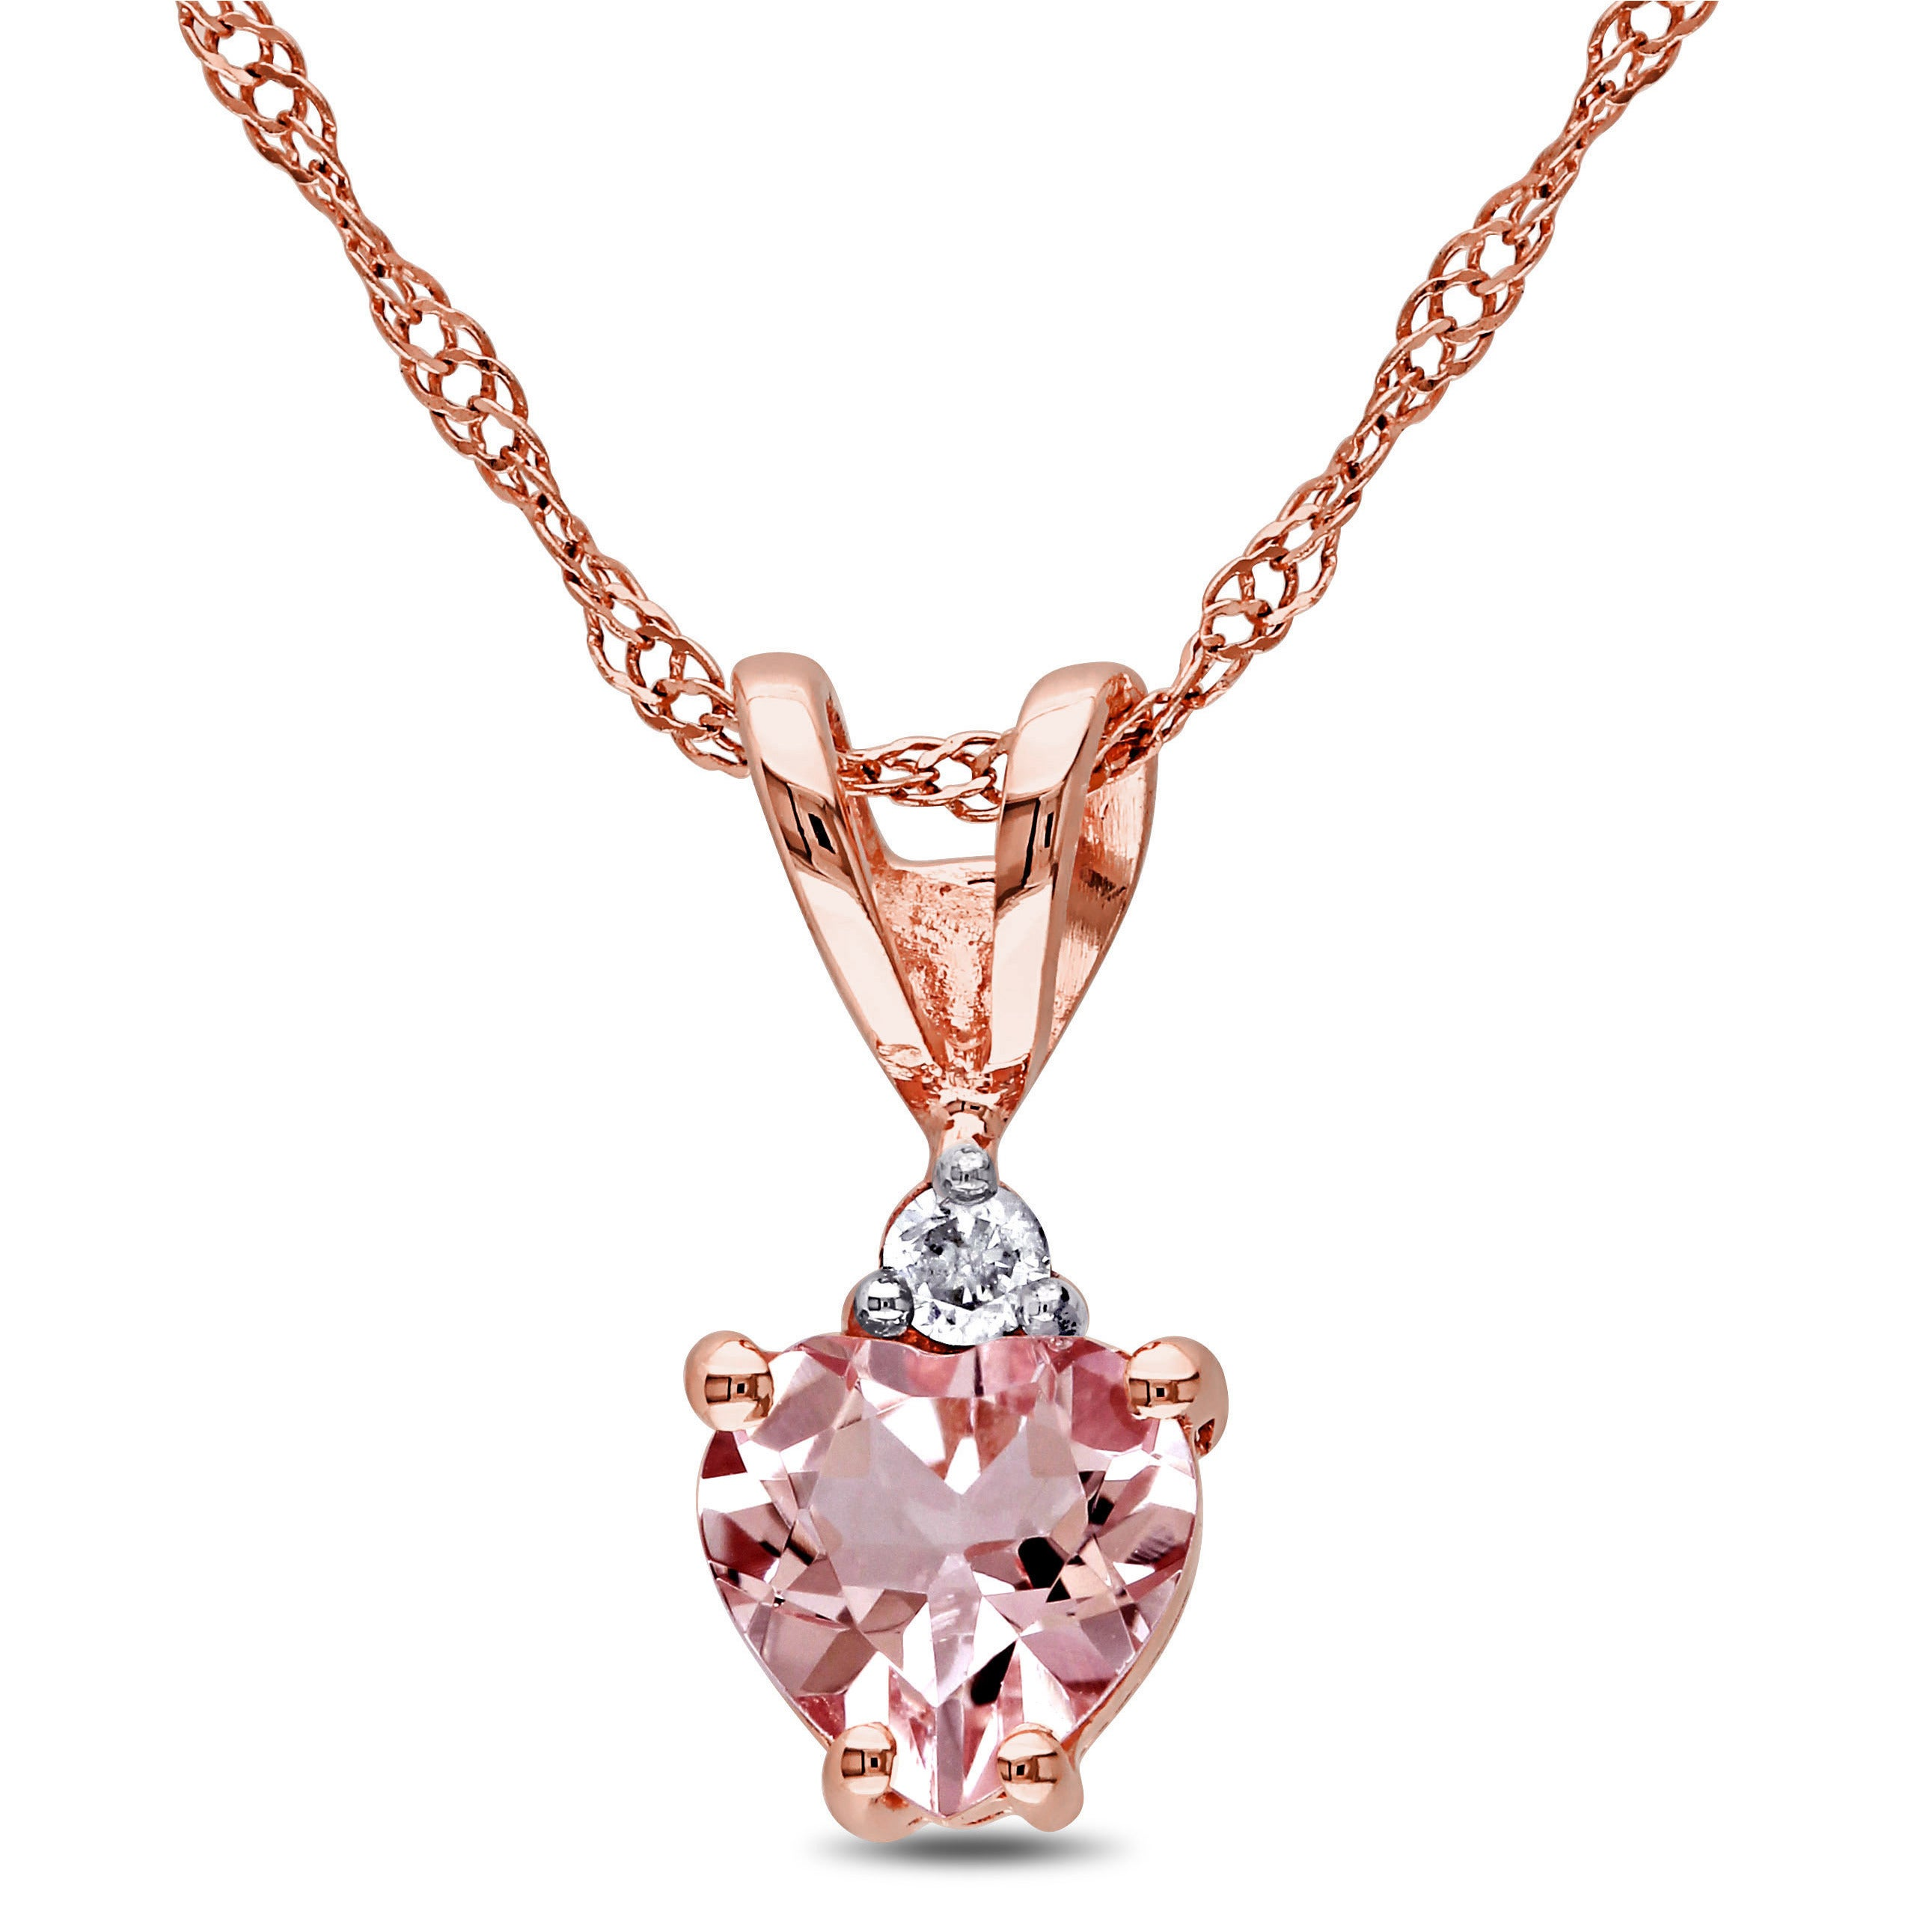 morganite necklace in pendant diamonds with rose gold colore oro